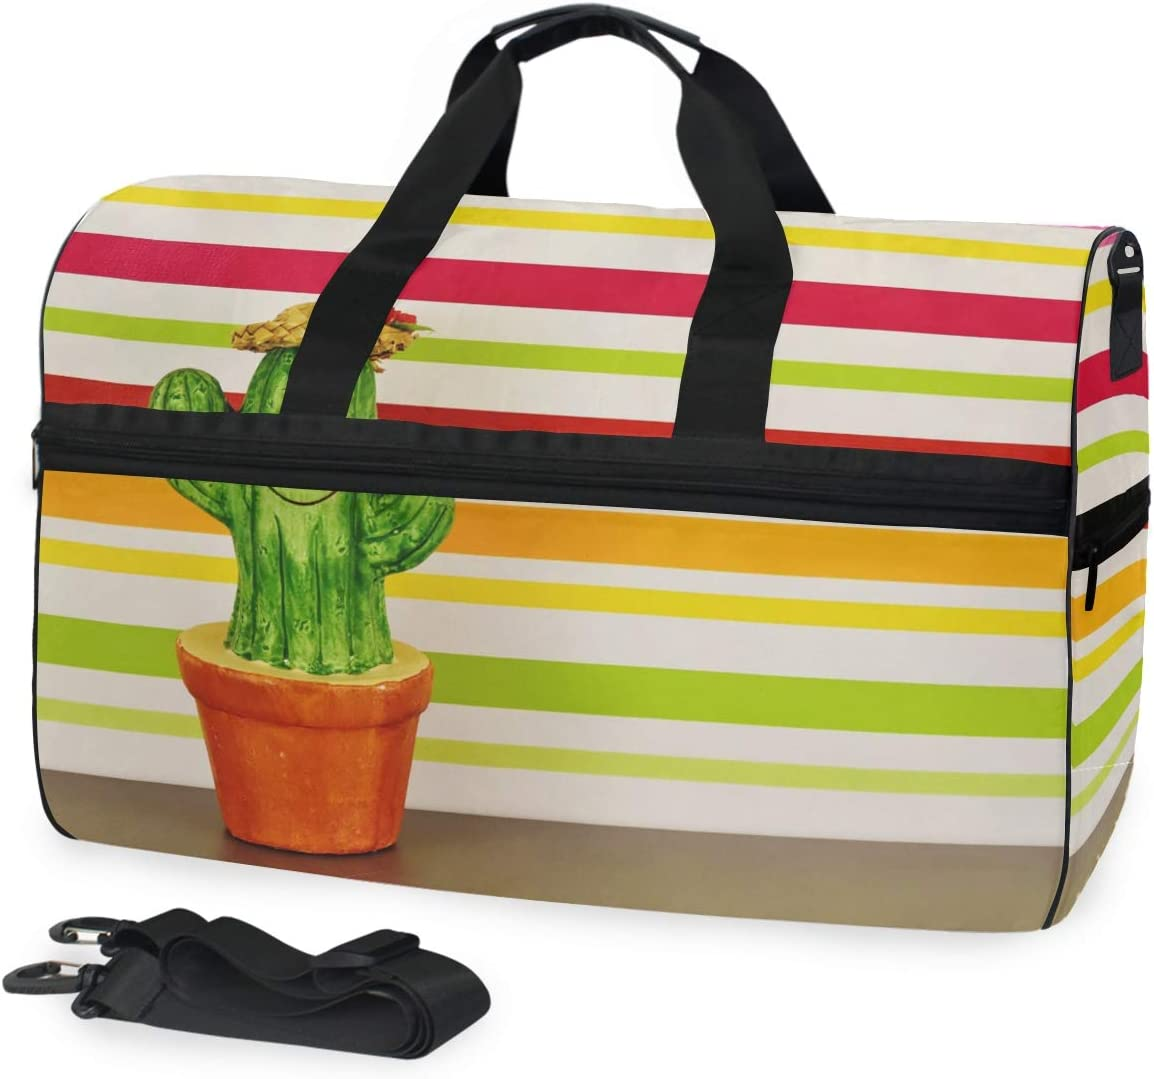 MUOOUM Funny Colorful Cactus Large Duffle Bags Sports Gym Bag with Shoes Compartment for Men and Women